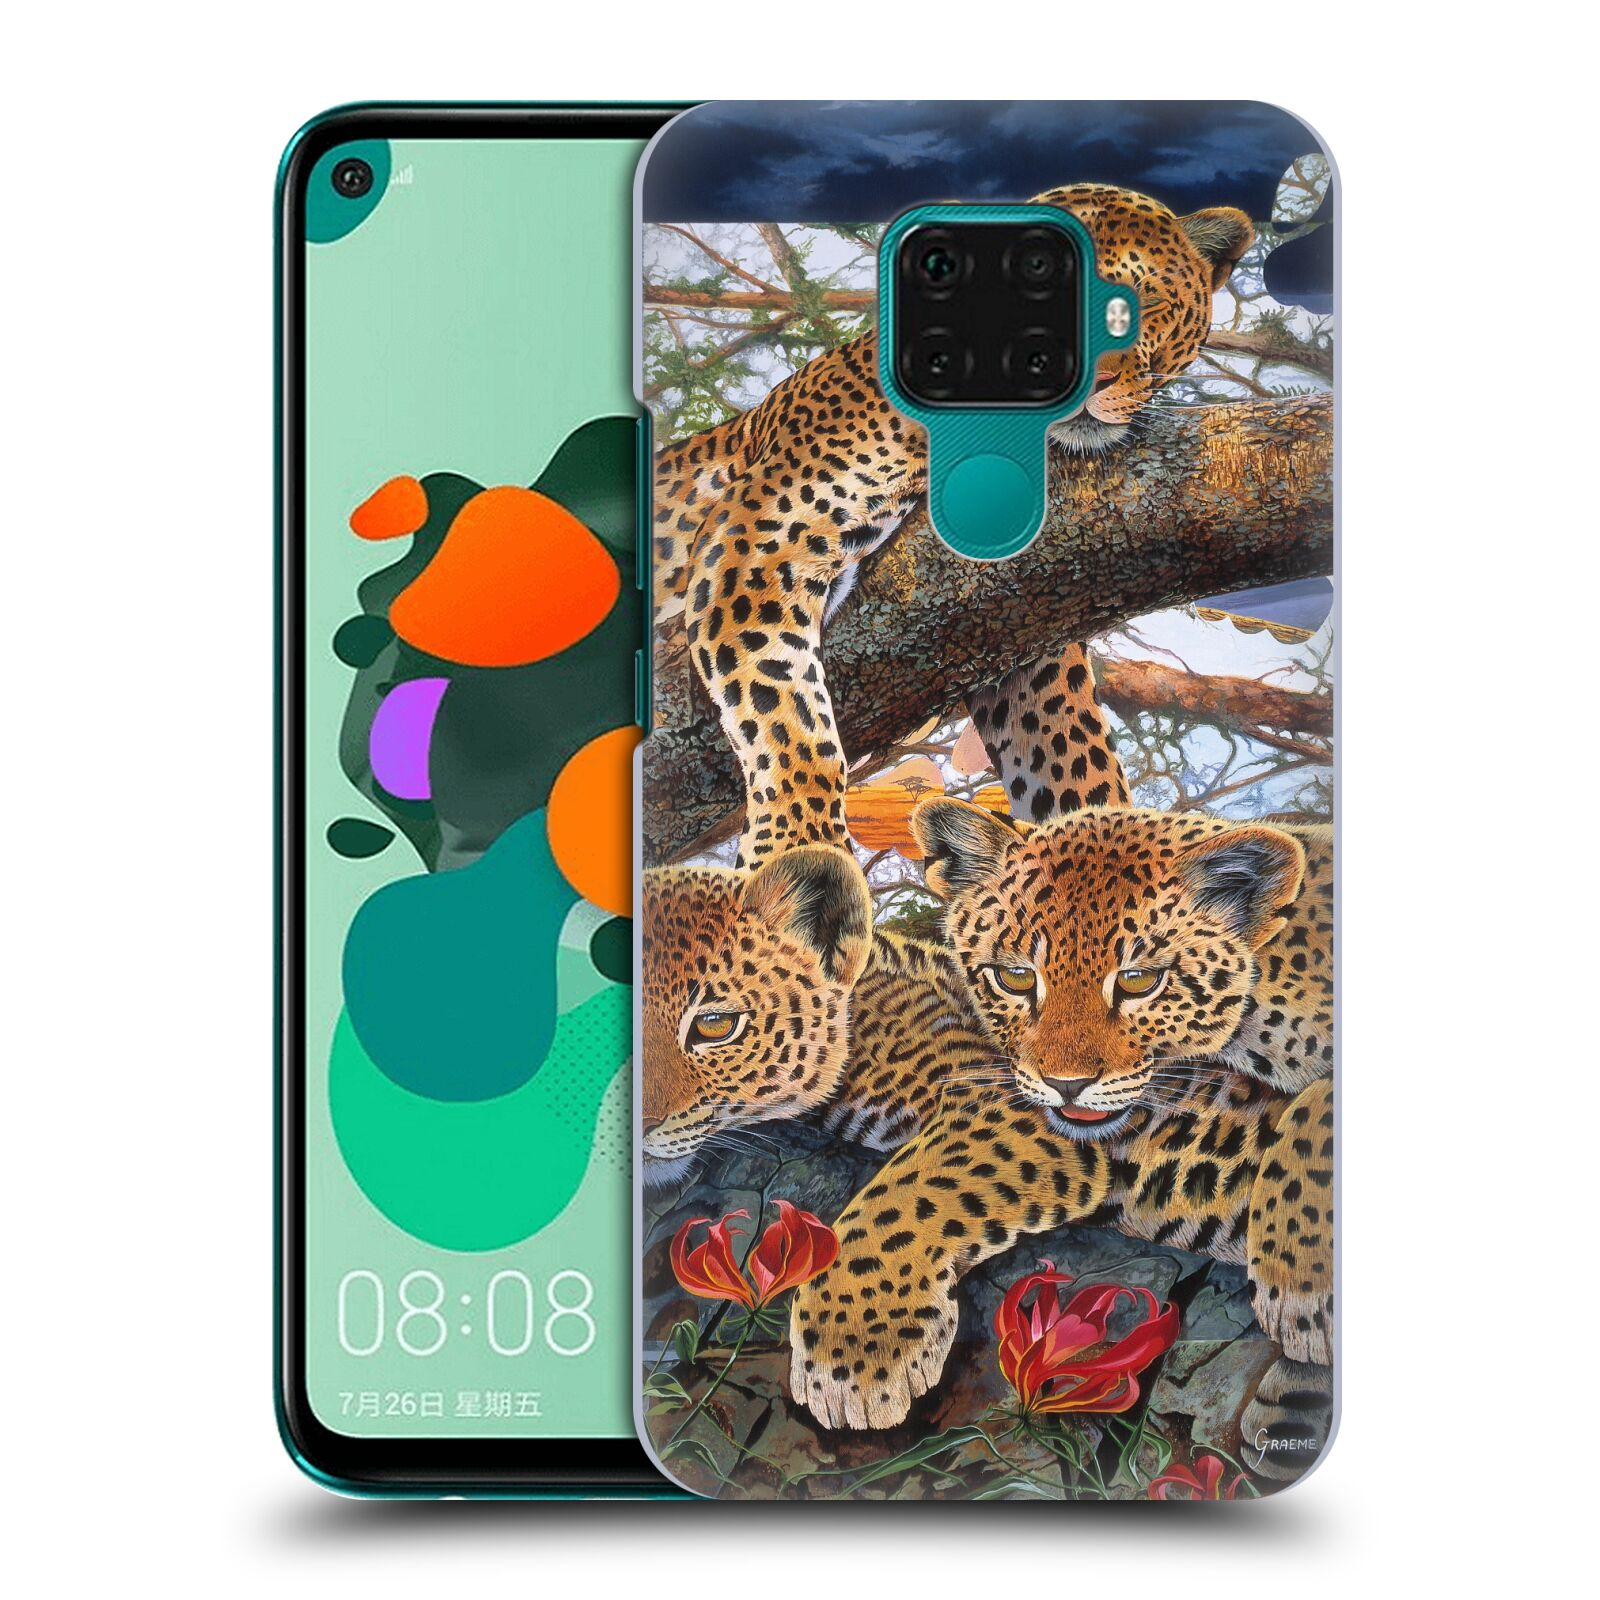 Official Graeme Stevenson Wildlife Leopard Case for Huawei Nova 5i Pro/Mate 30 Lite